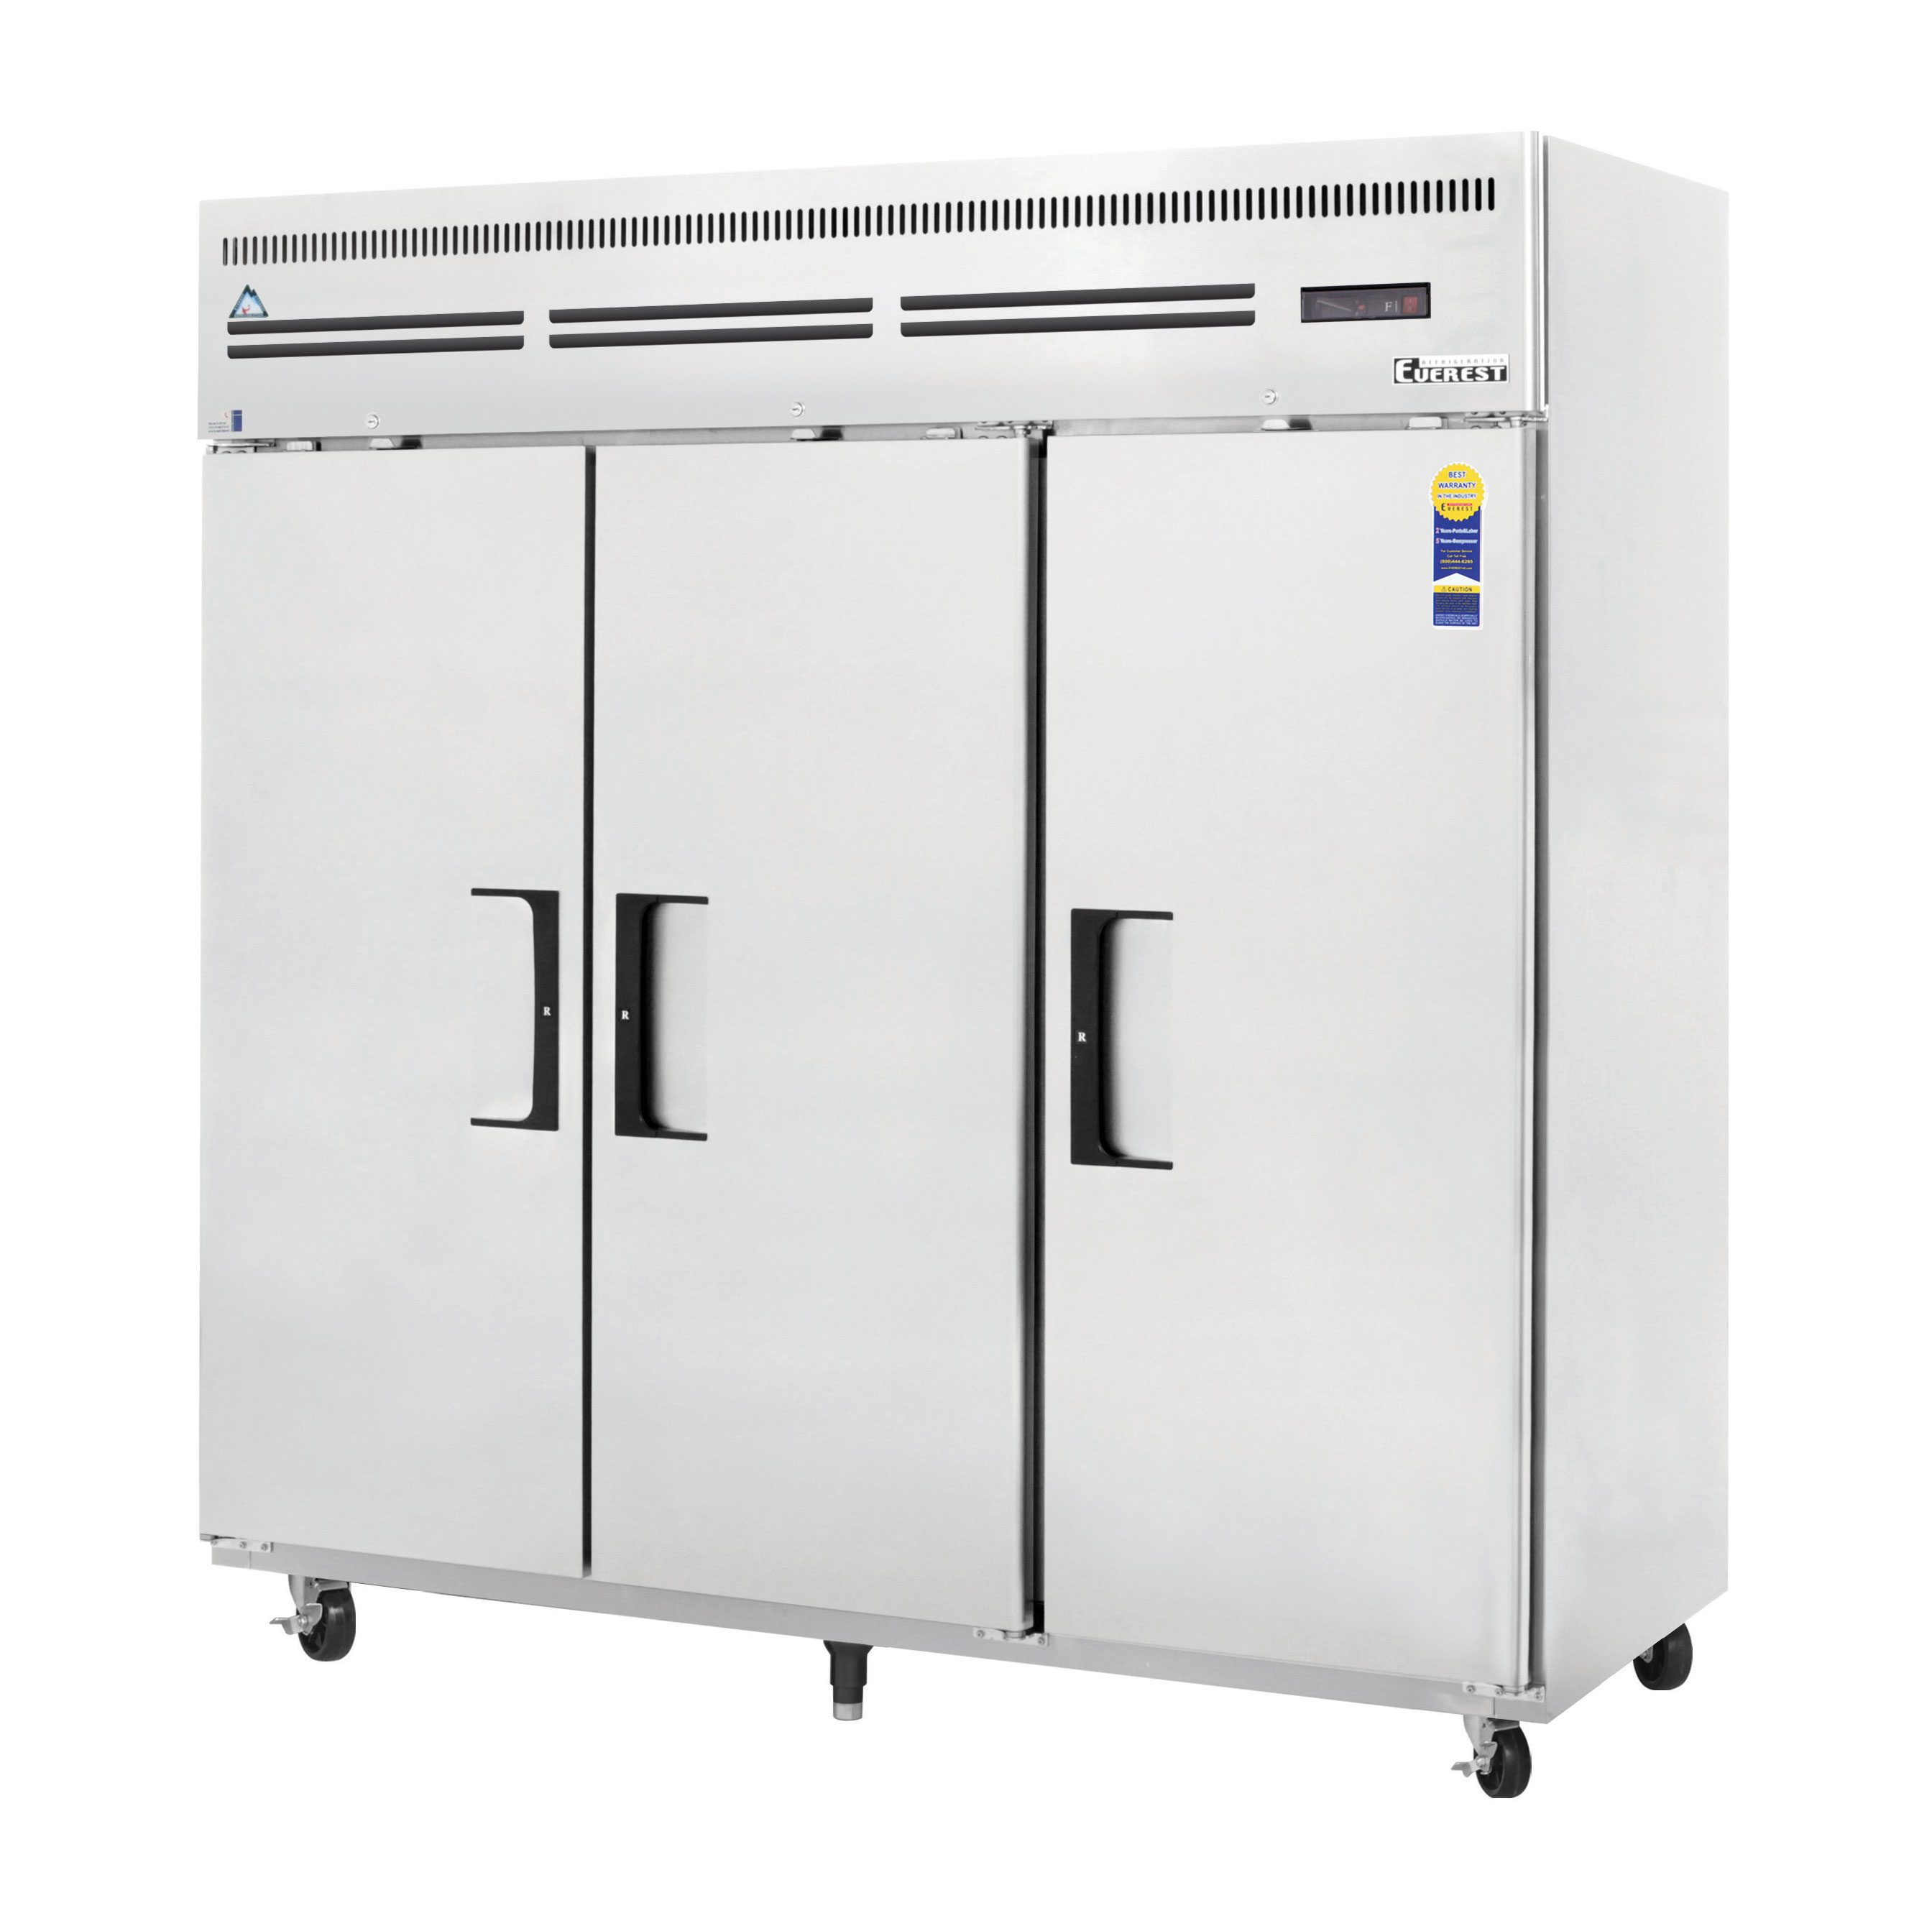 Everest Refrigeration ESF3 freezer, reach-in